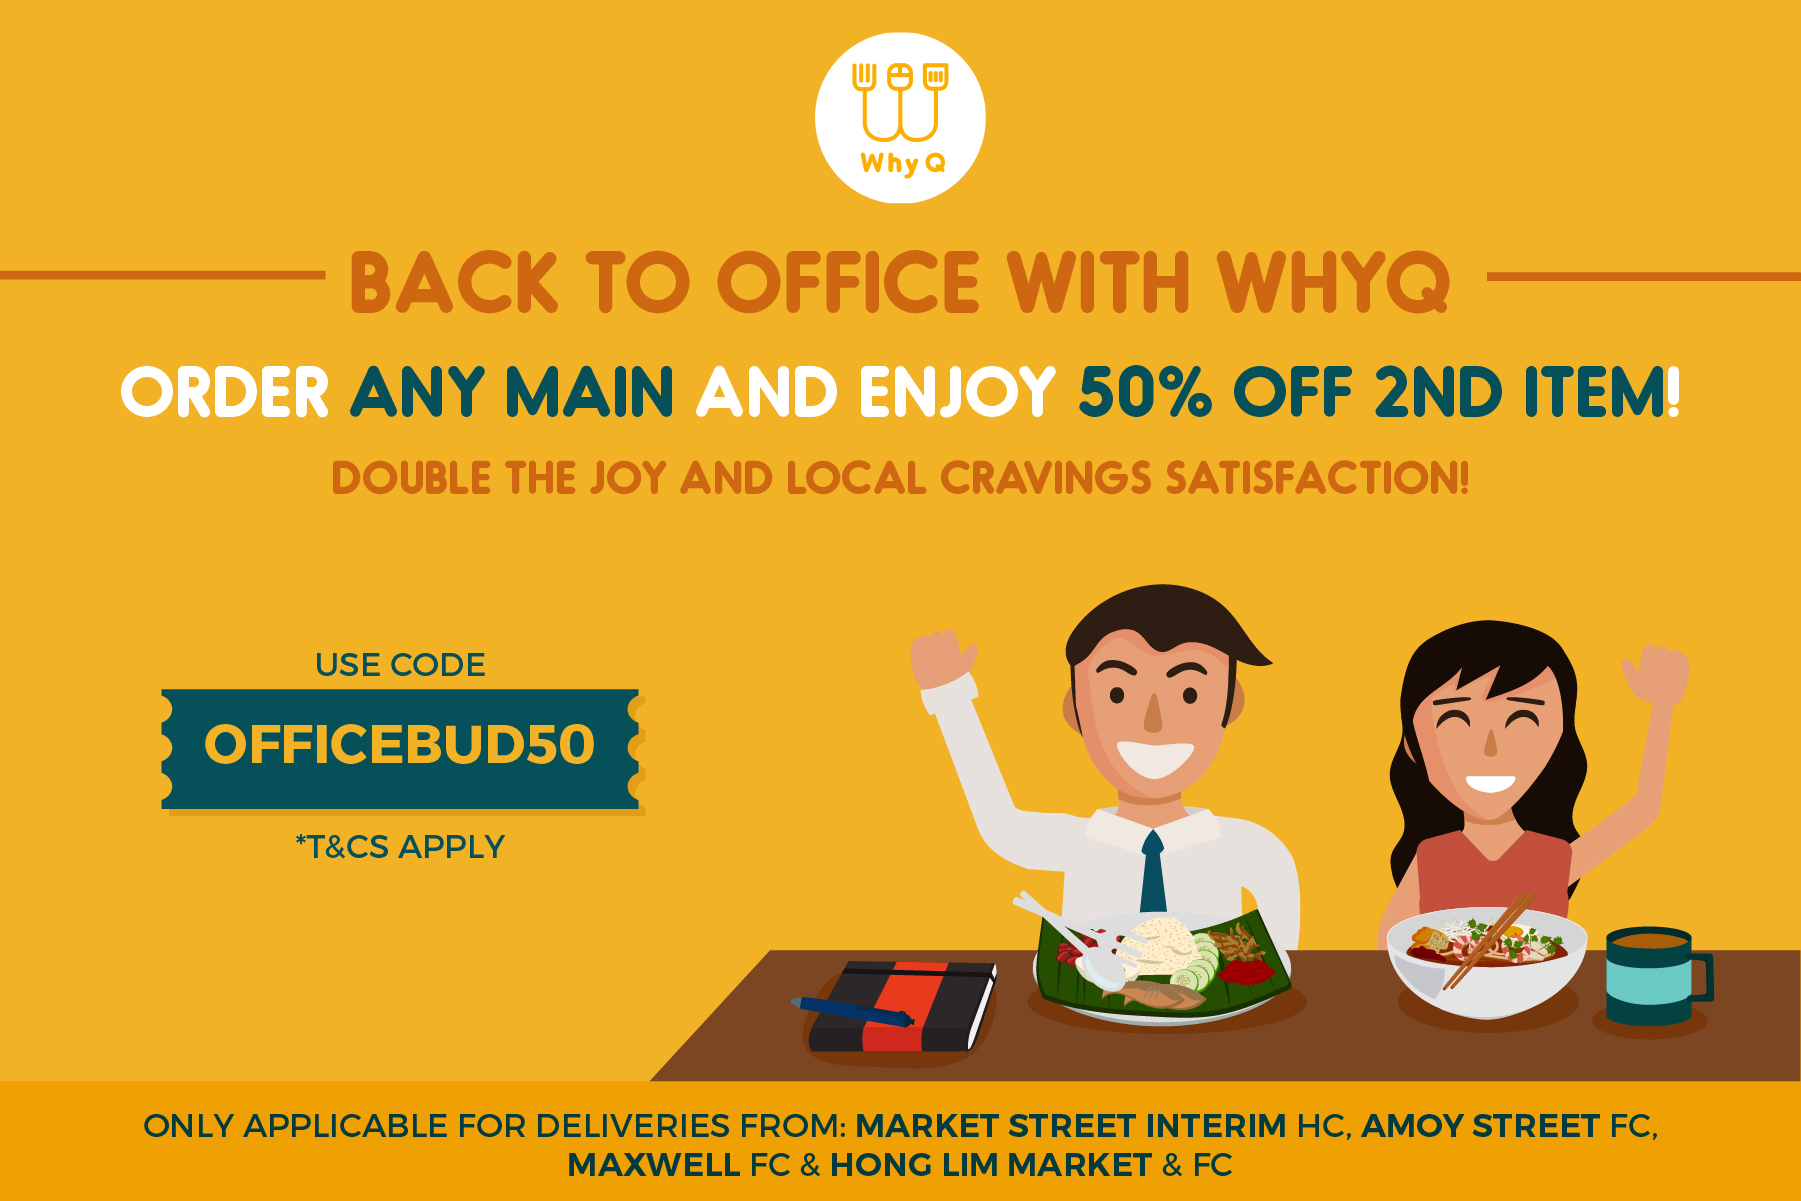 WhyQ Promotion OFFICEBUD50